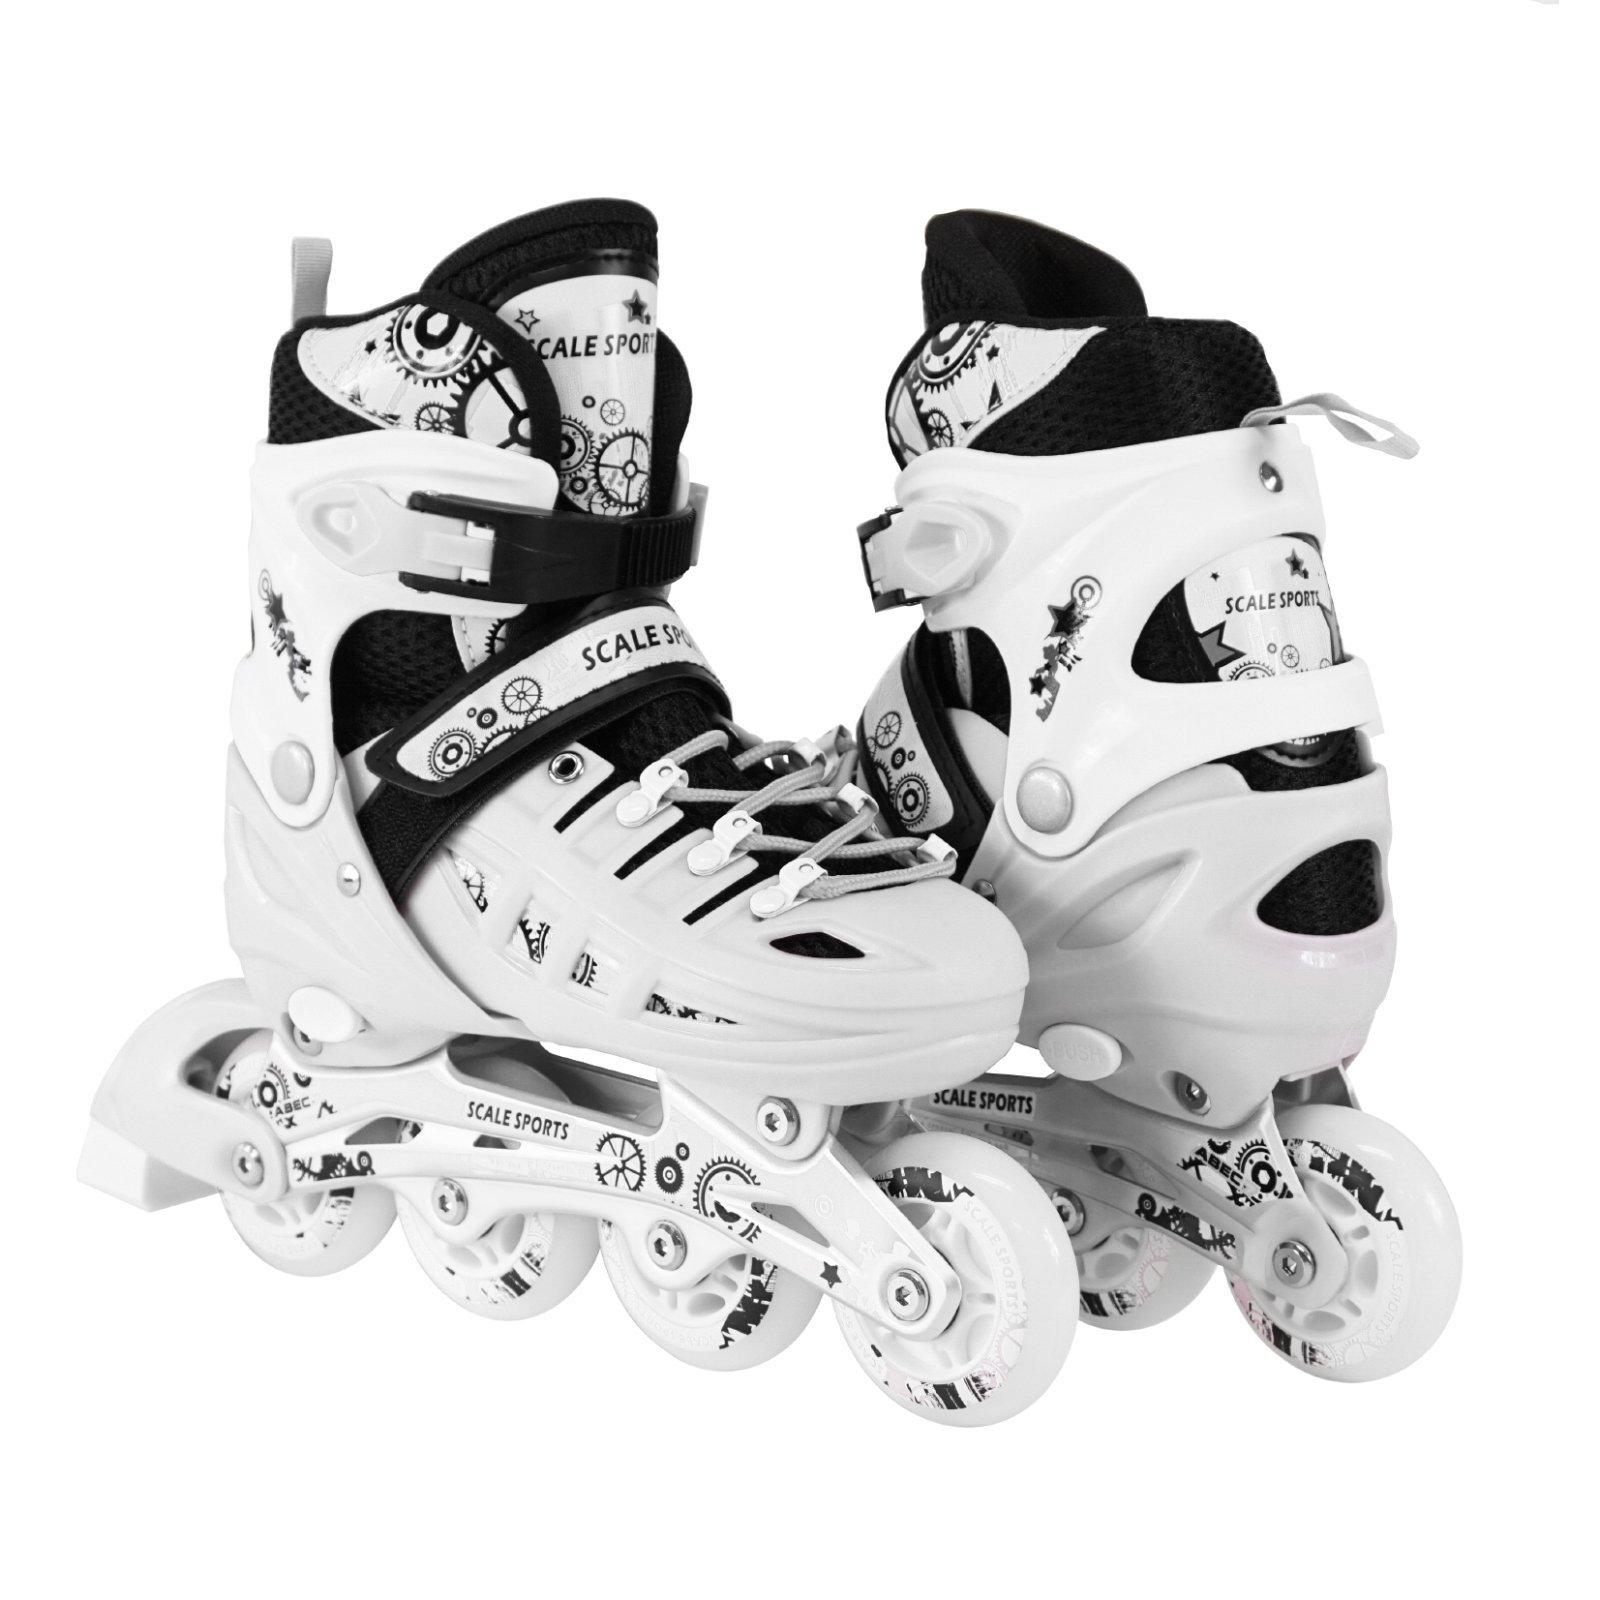 Kids Adjustable Inline Roller Blade Skates Scale Sports White Medium Sizes Safe Durable Outdoor Featuring Illuminating Front Wheels 905